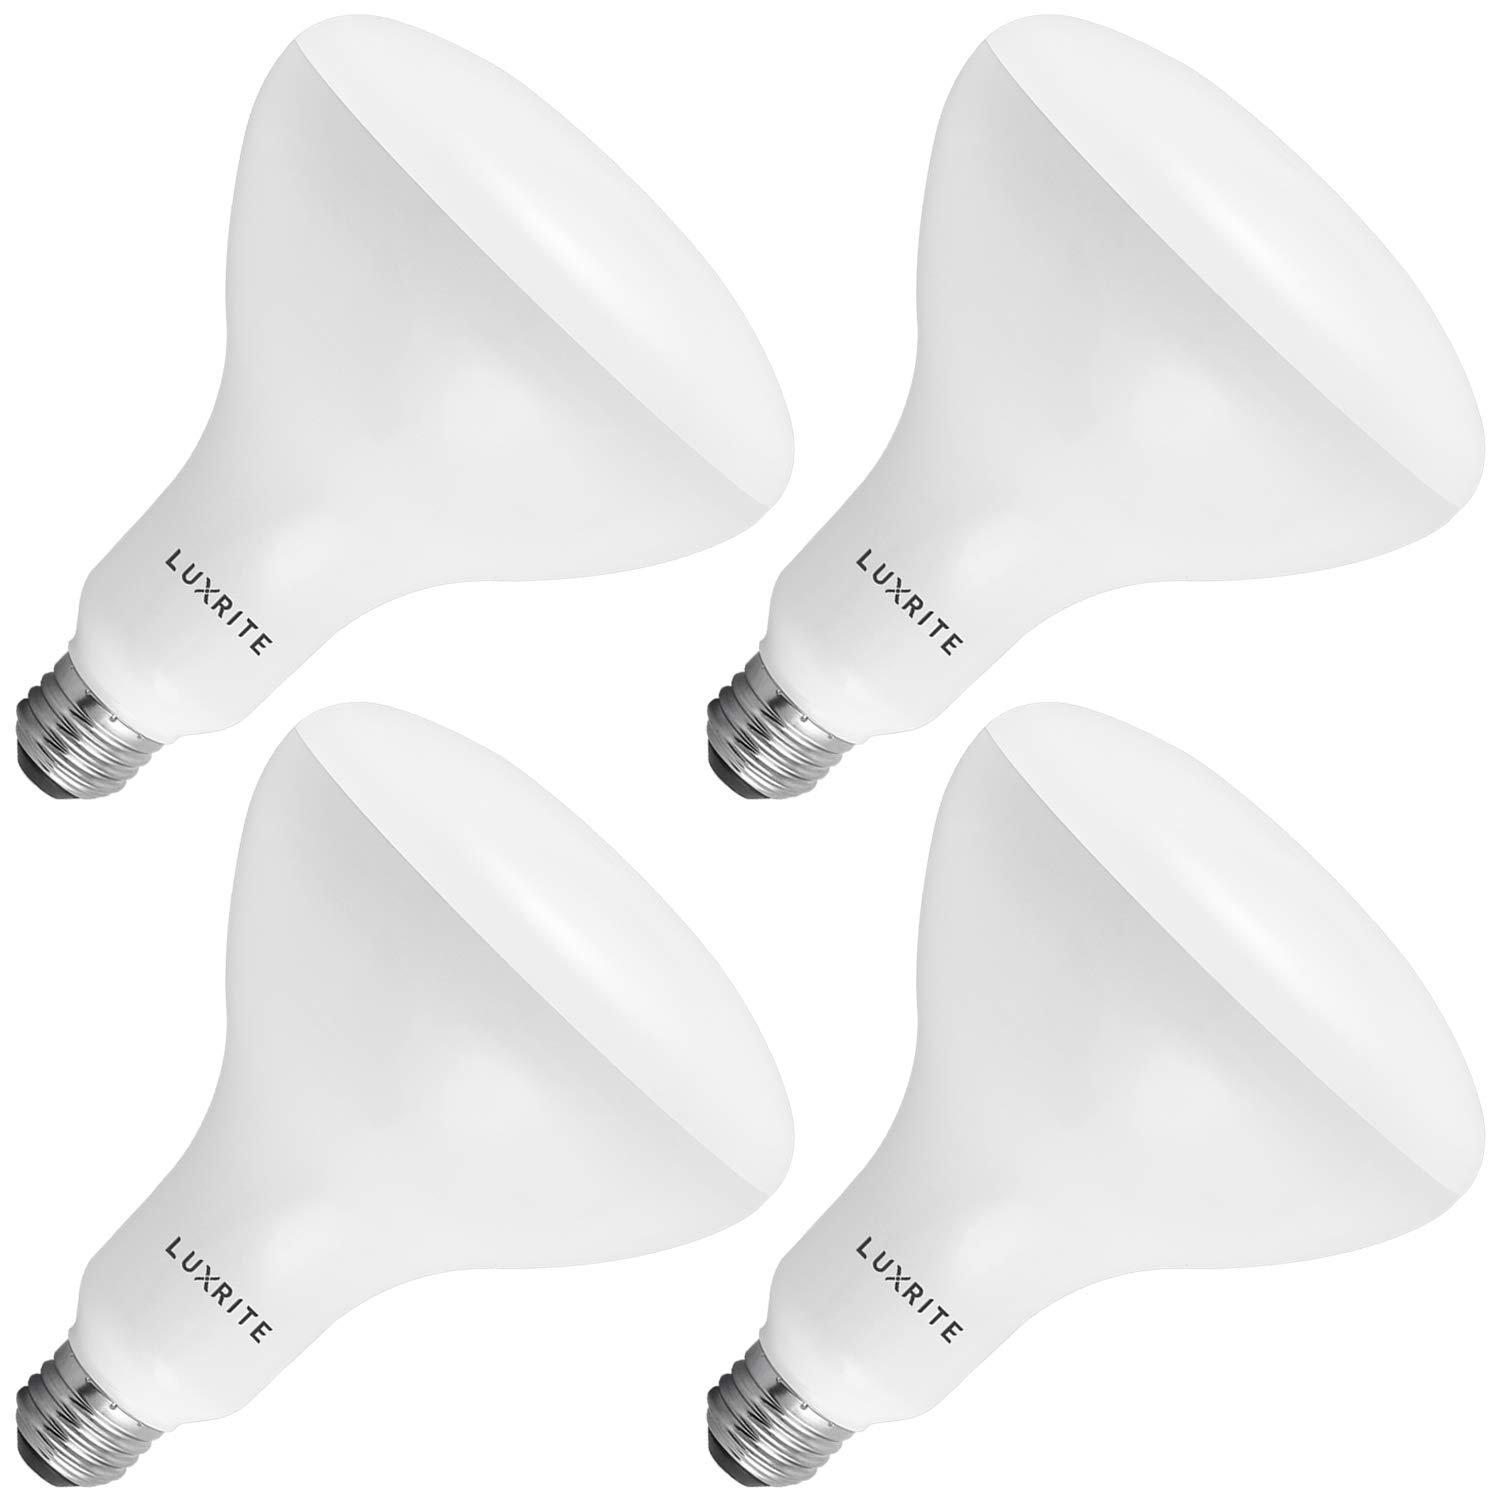 Indoor//Outdoor Perfect for Office and Recessed Lighting E26 Medium Base LED Flood Light Bulb 1100 Lumen 10 Pack Luxrite BR40 LED Light Bulb Dimmable 6500K Daylight White 14W 85W Equivalent